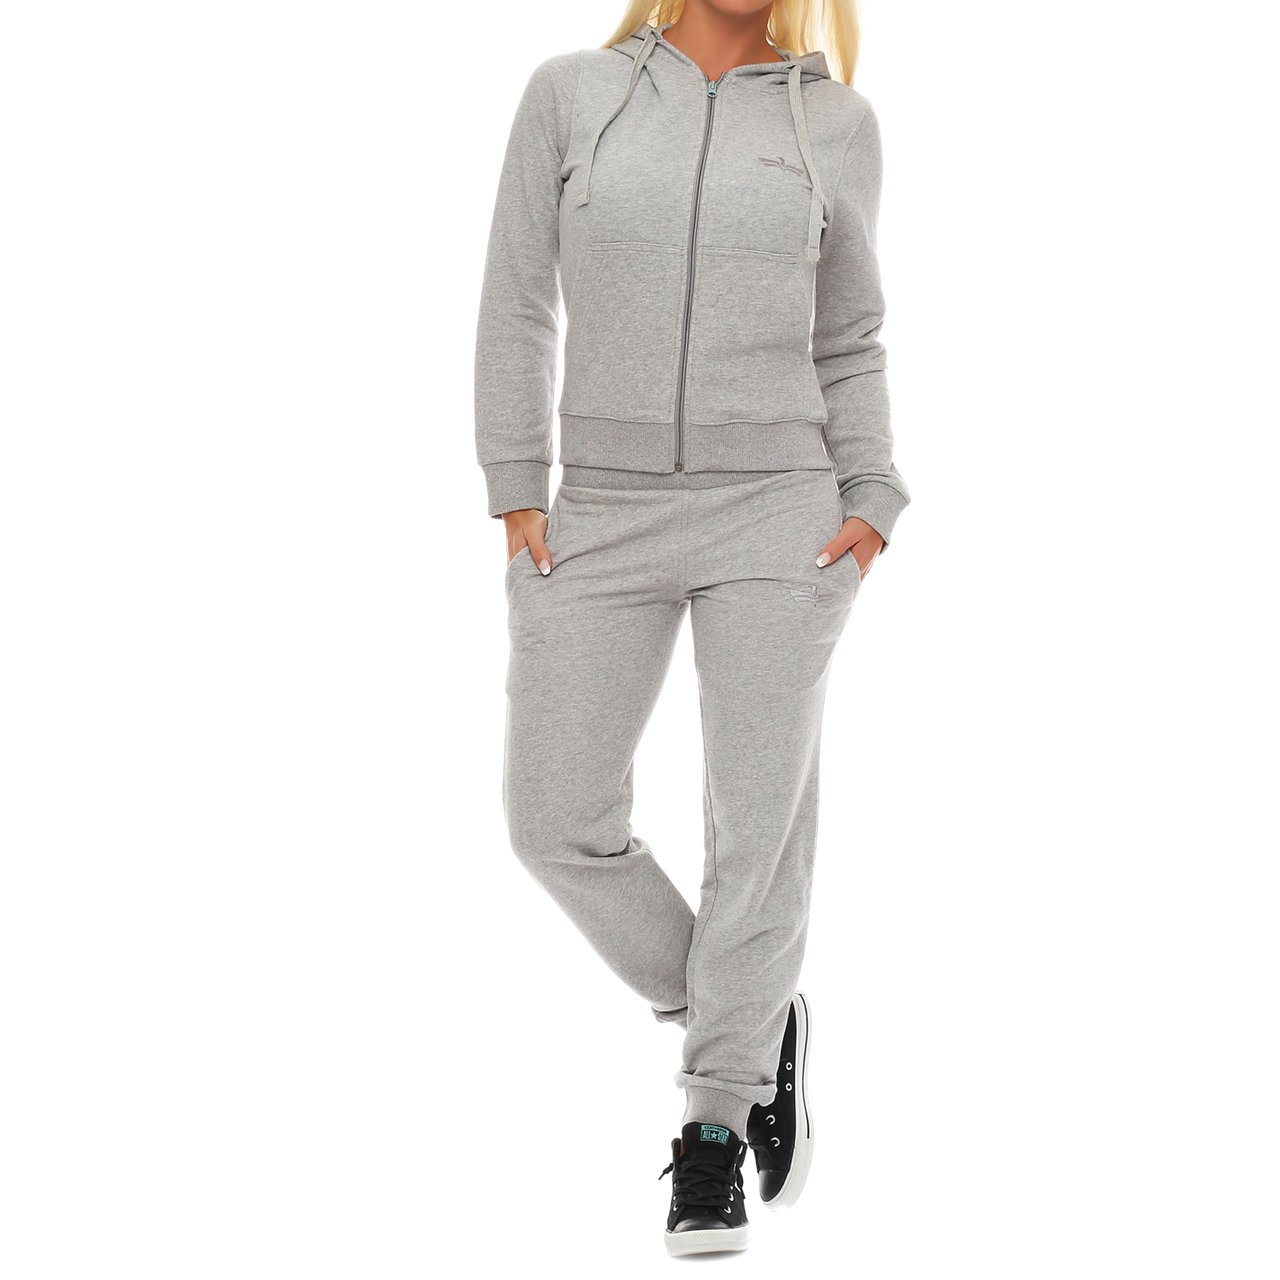 Finch Girl Ladies Sports Suit tuta da jogging da donna tuta Sport Tuta Finchgirl